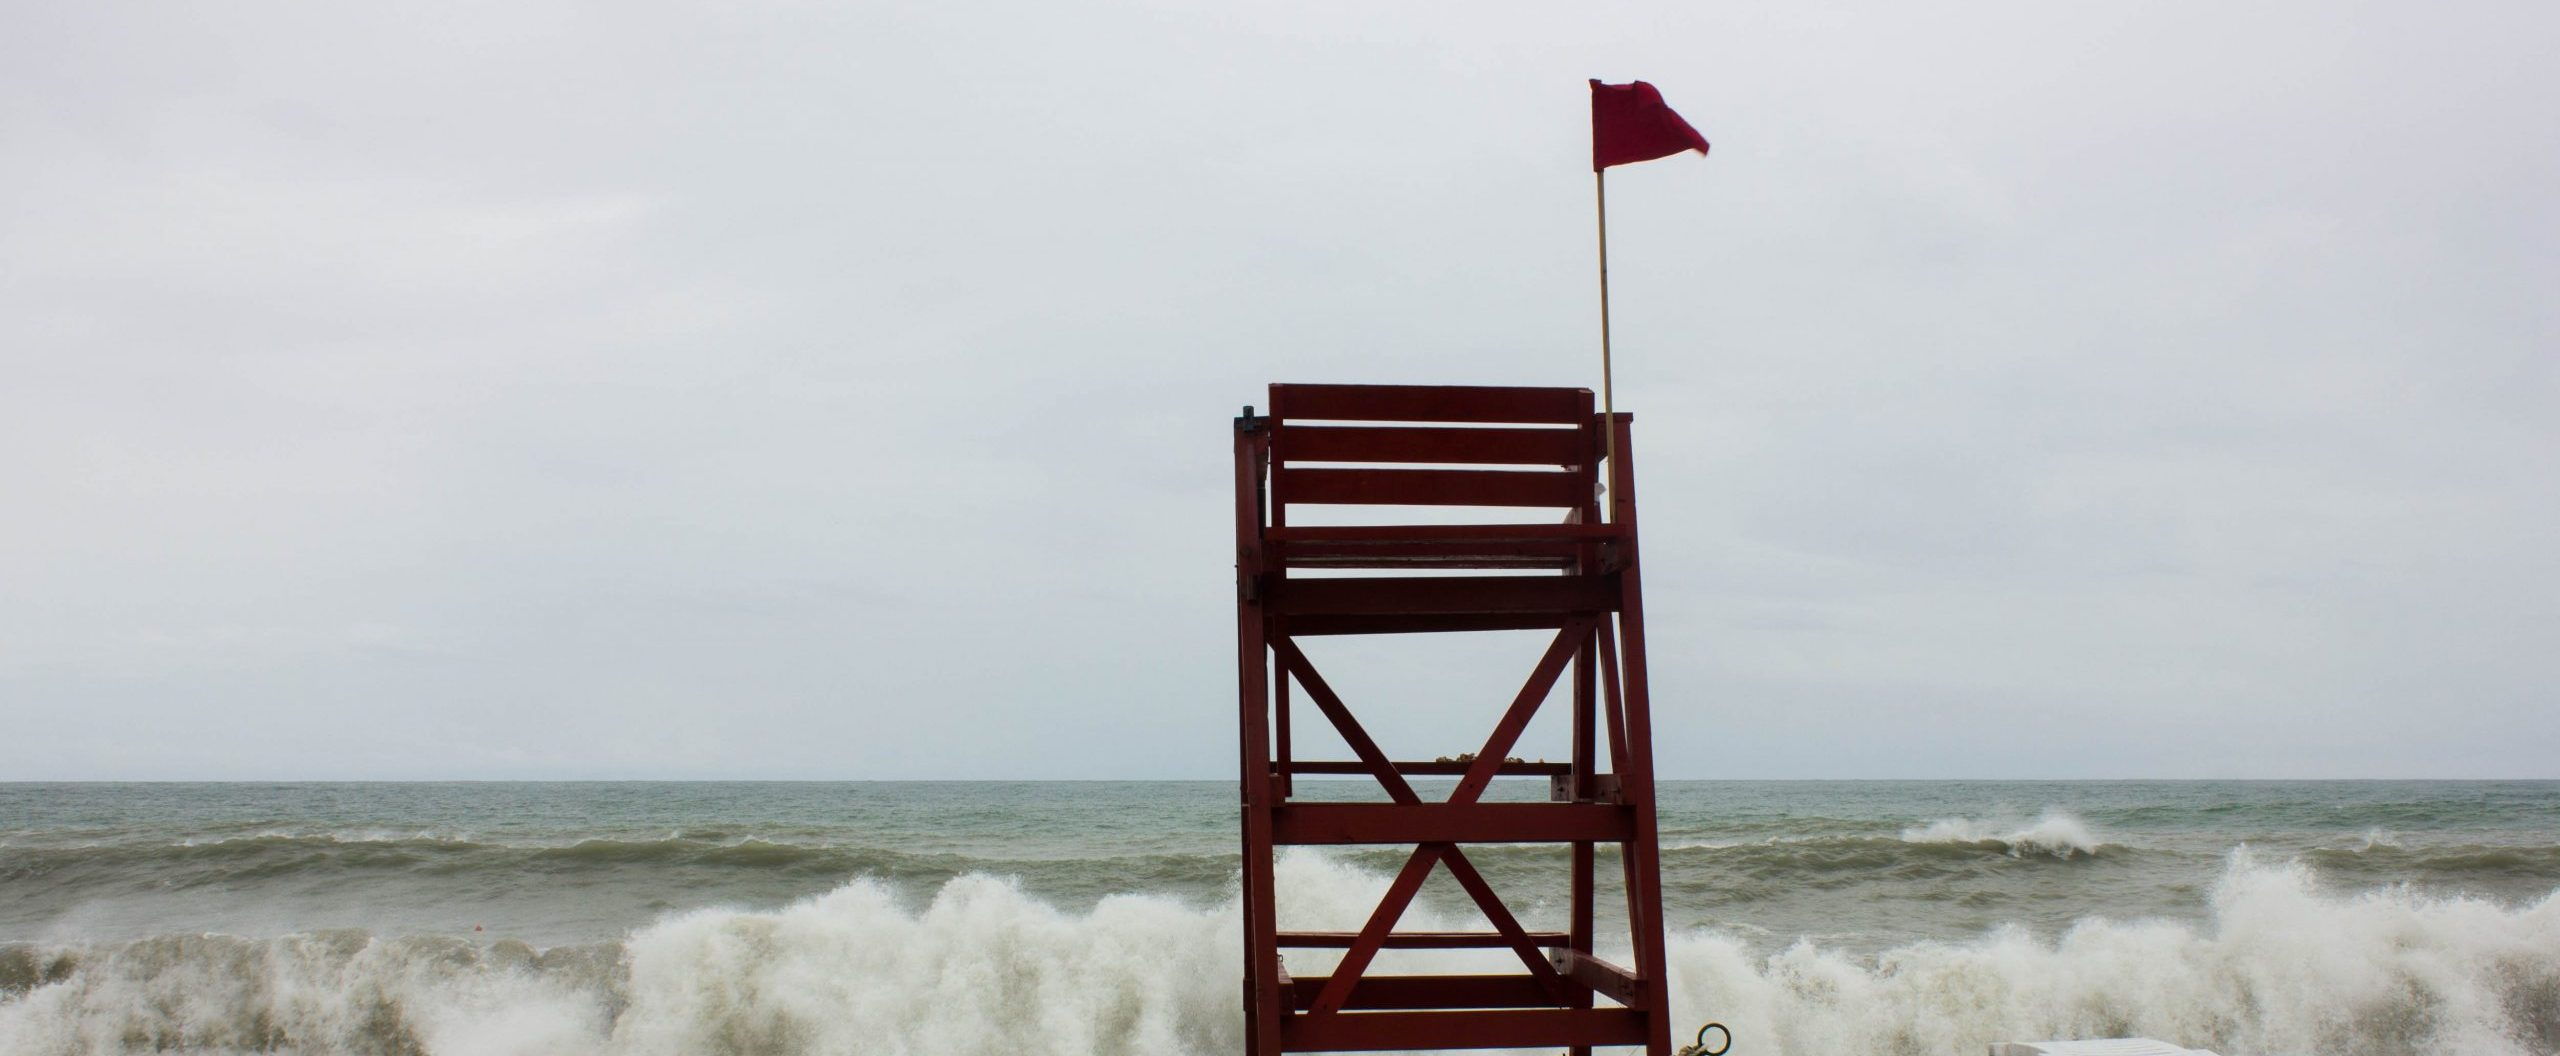 Red flag on a stormy beach